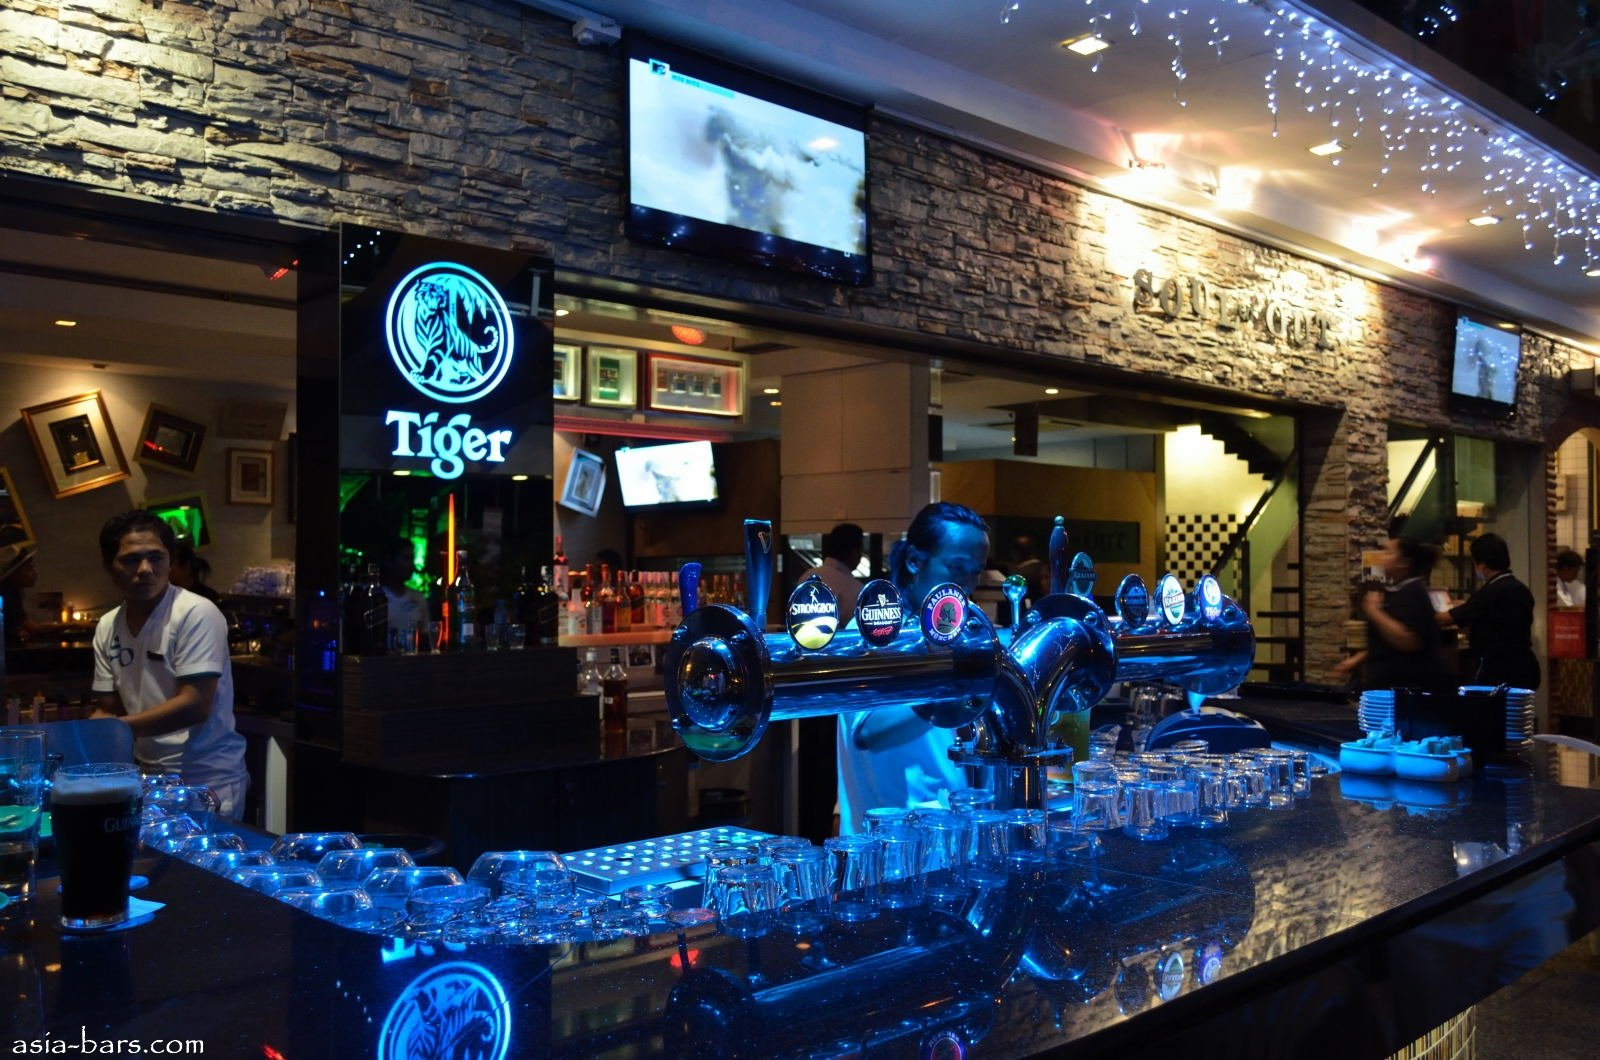 Souled out cafe and bar in kuala lumpur asia bars restaurants - Images of bars ...